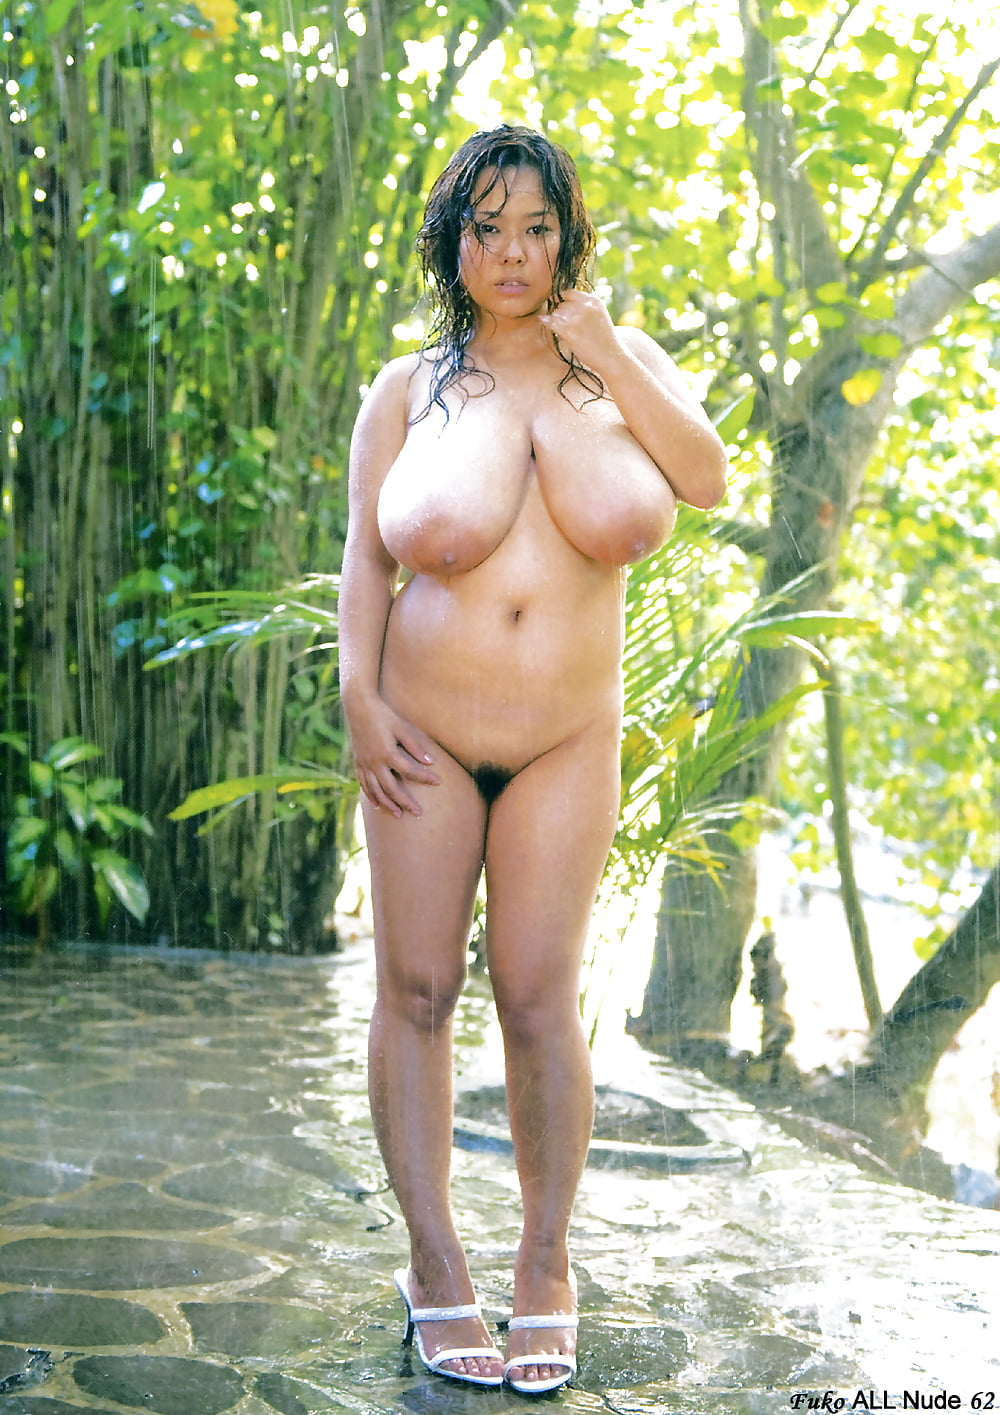 Fuko nude video wet